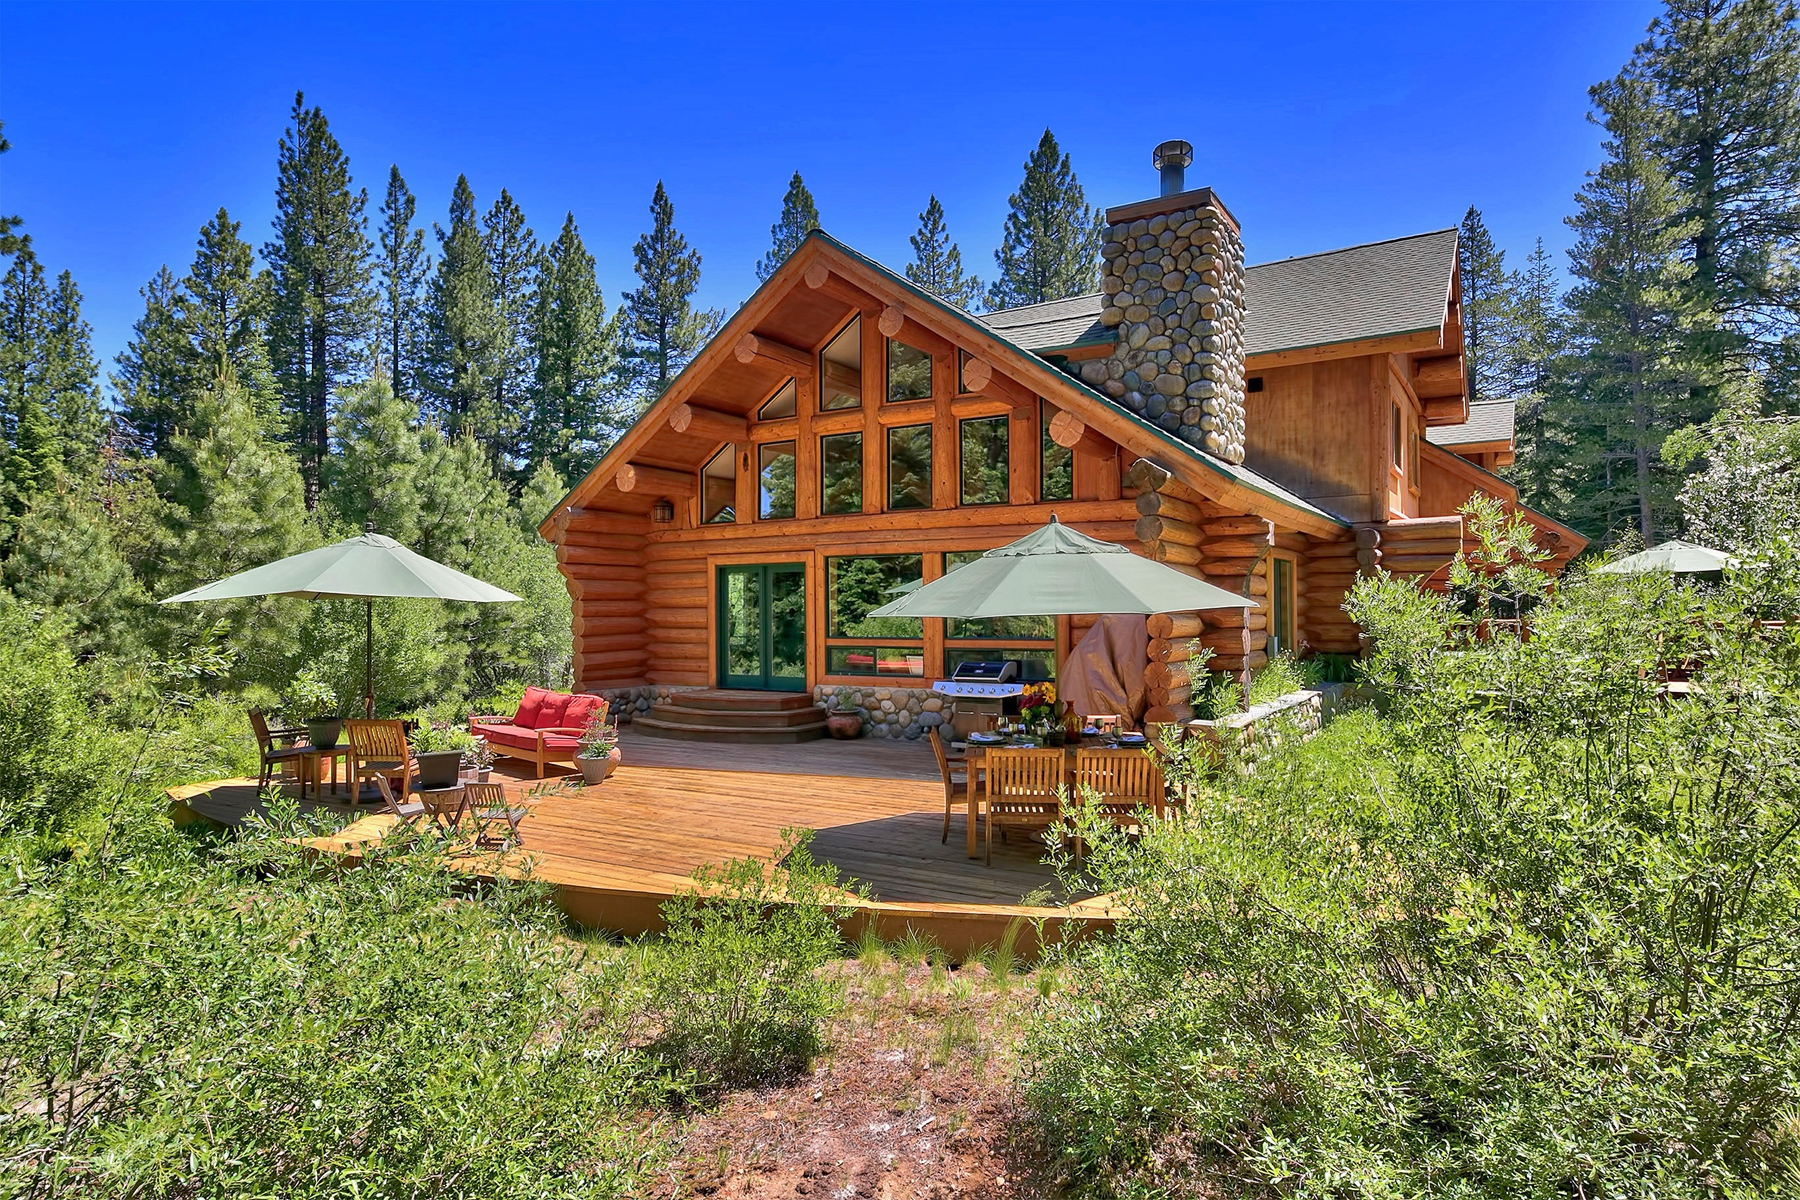 Single Family Homes for Active at 11979 Stony Creek Court, Truckee CA 96161 11979 Stony Creek Court Truckee, California 96161 United States